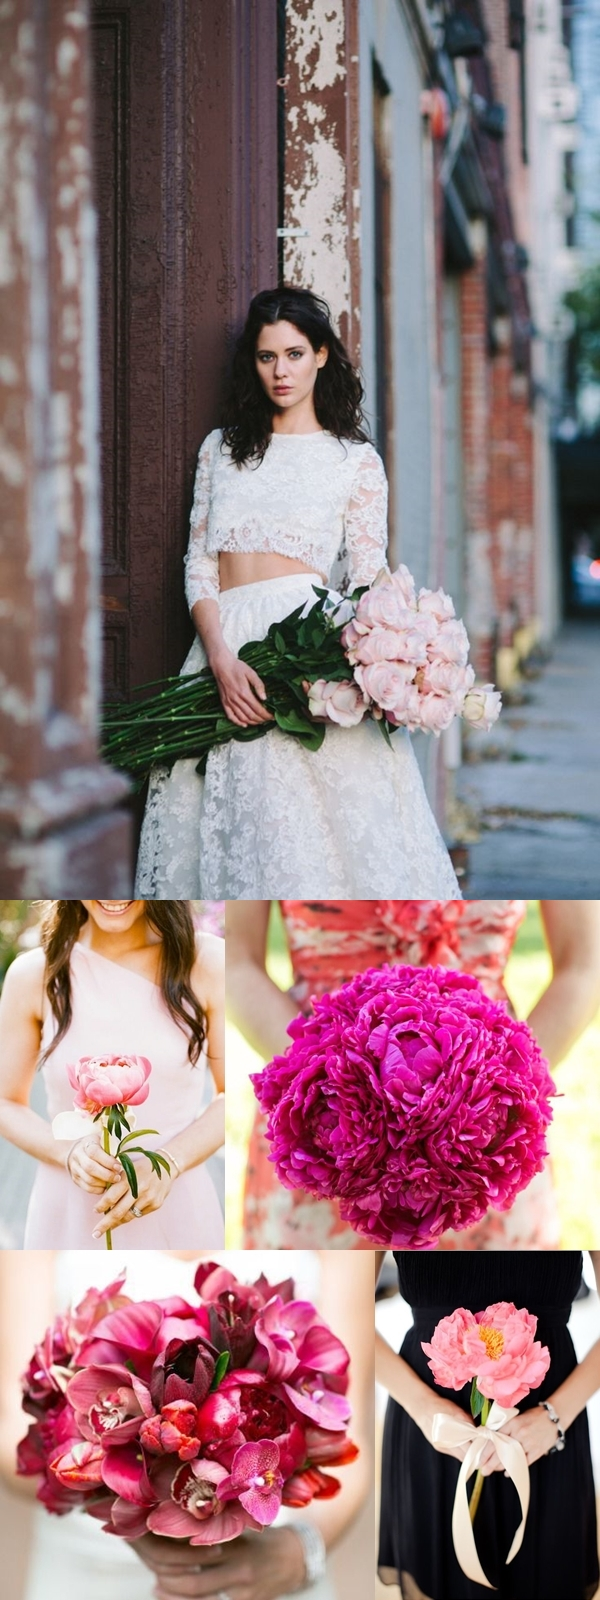 Wedding Philippines - Pink Single Bloom Flower Bouquet Ideas